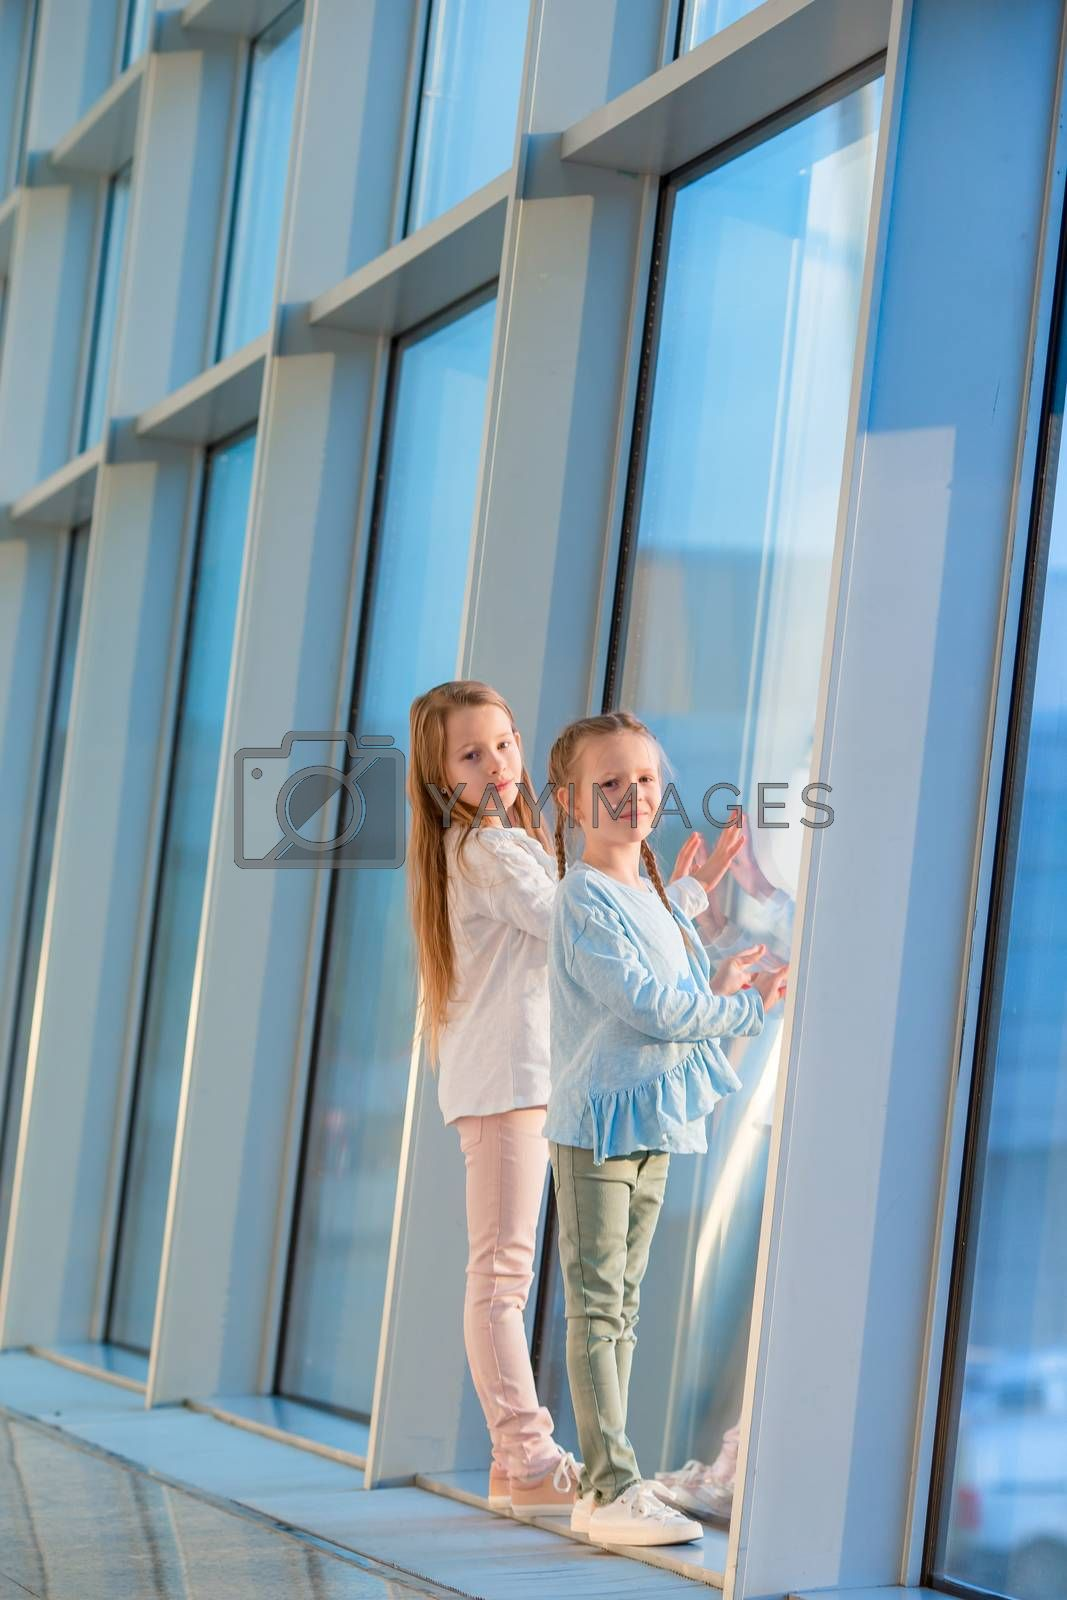 Little girls in airport near big window while wait for boarding